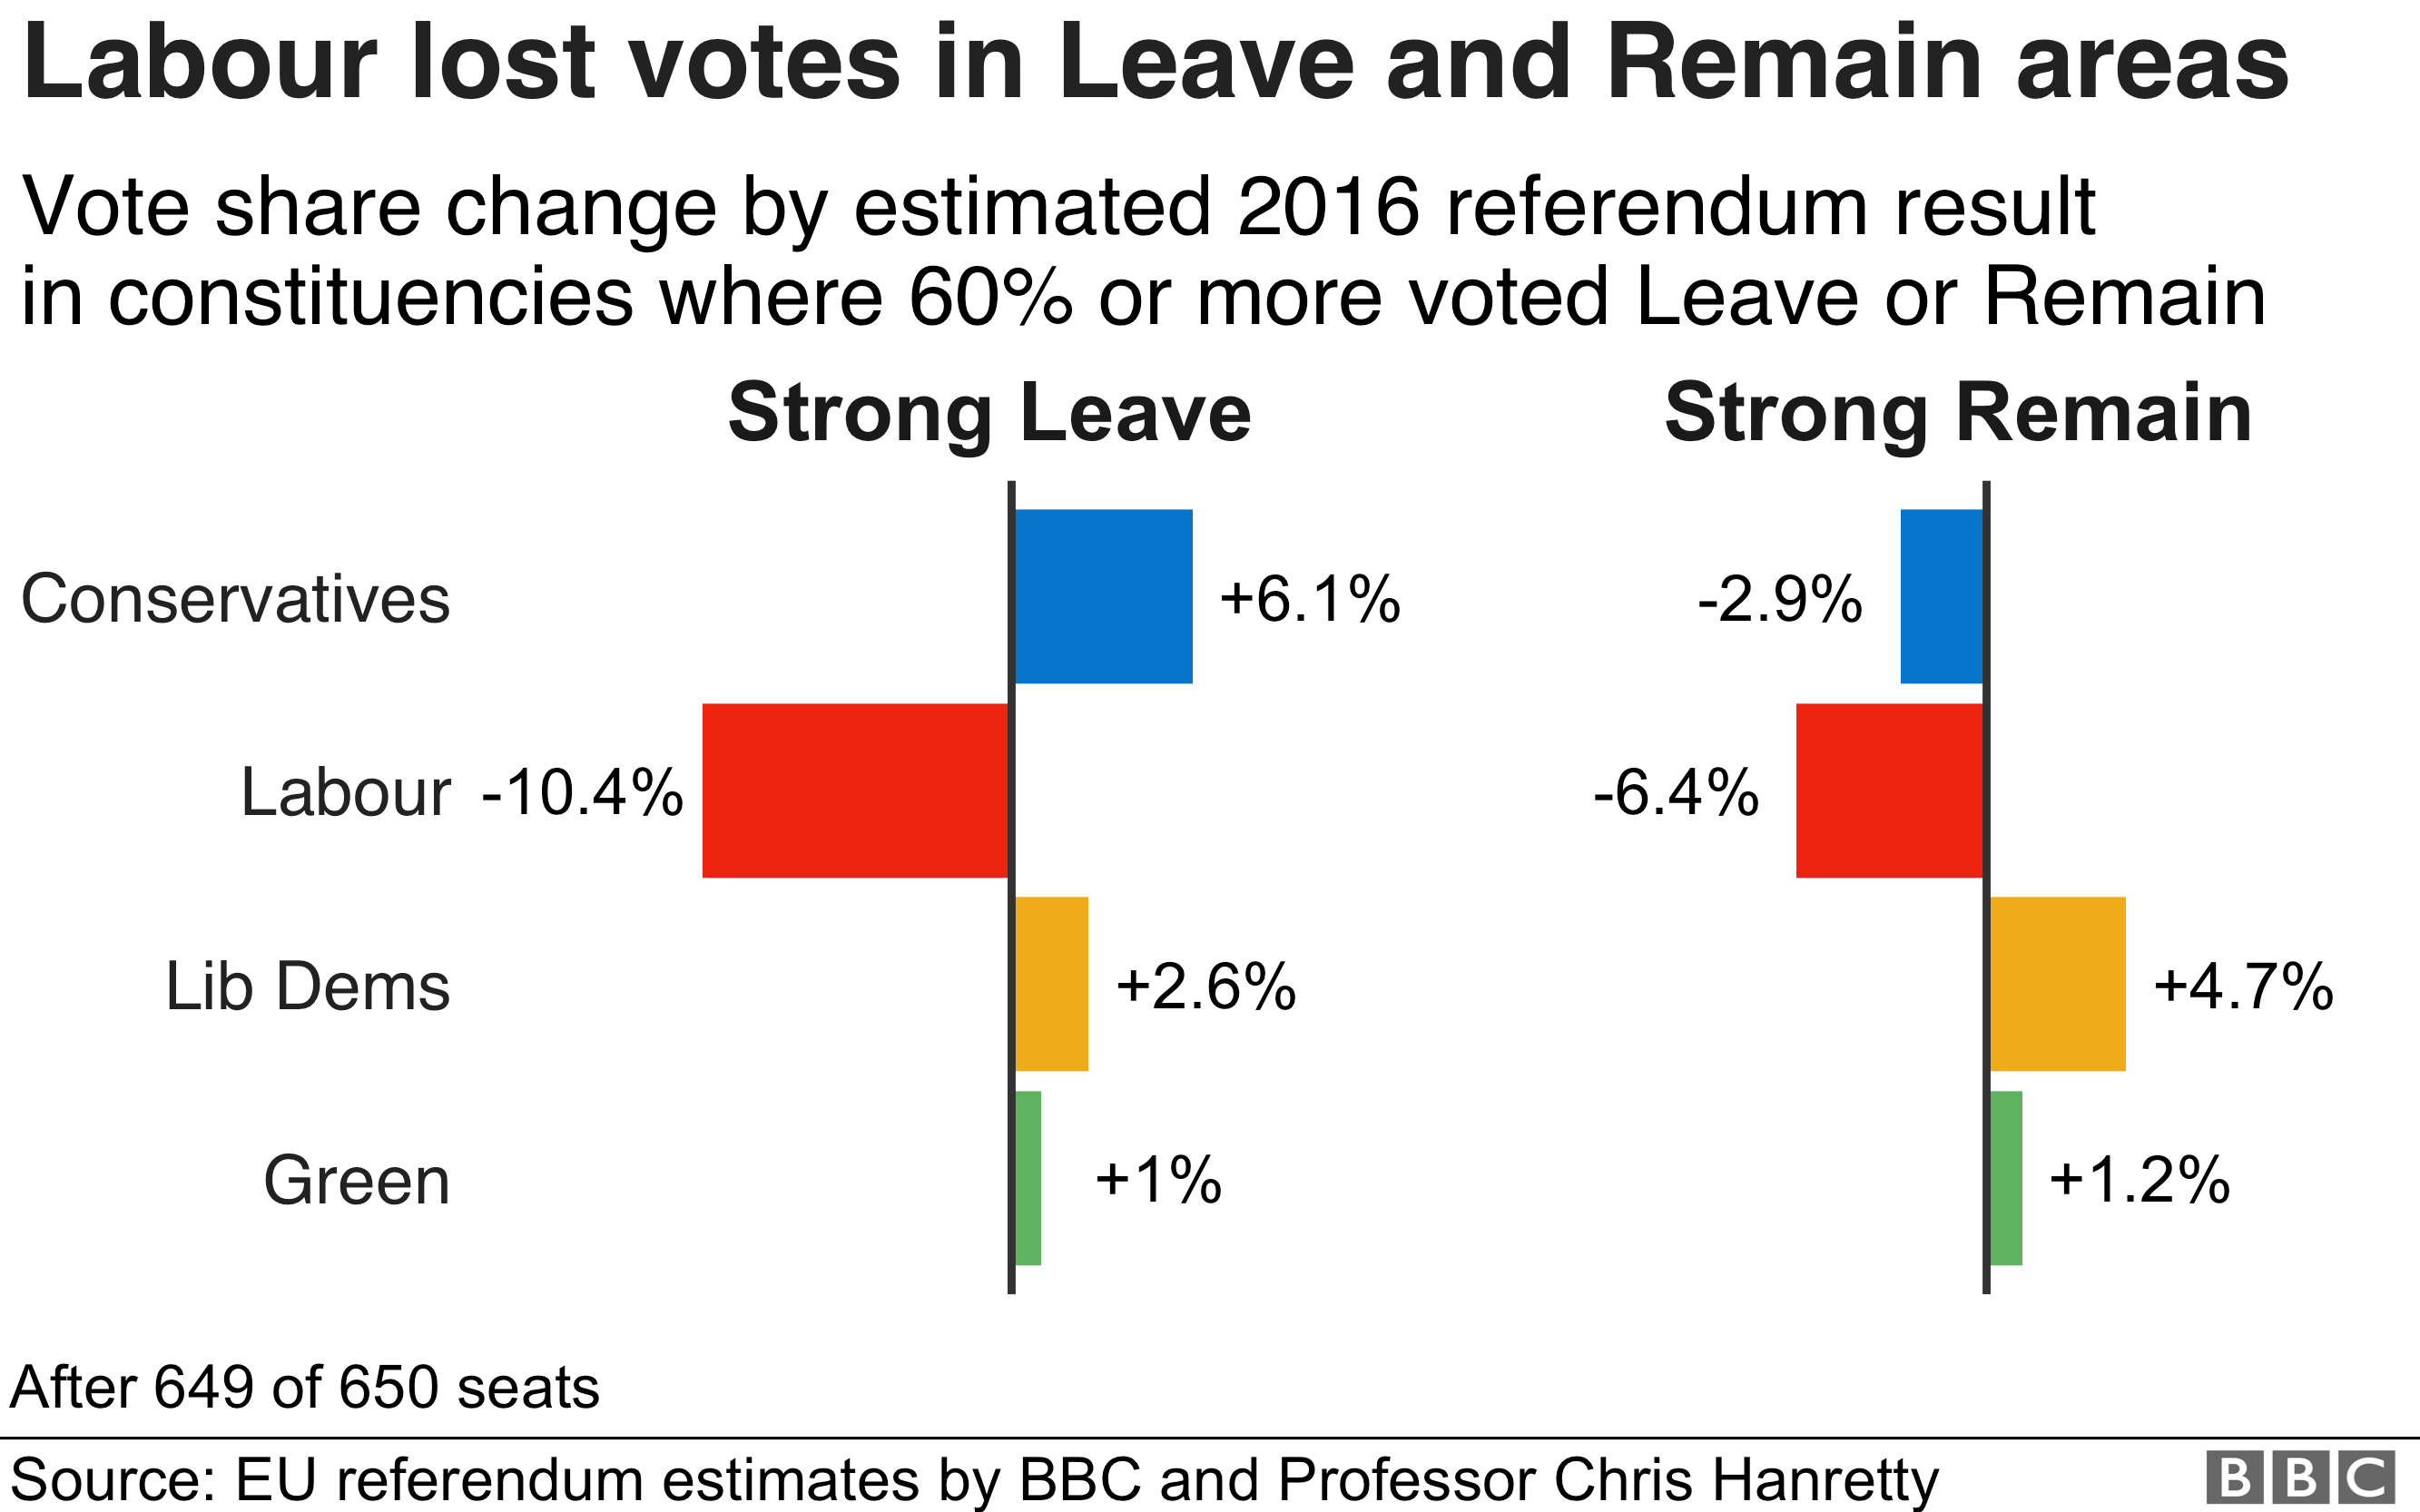 How the parties' share changed in strong Leave and strong Remain areas.